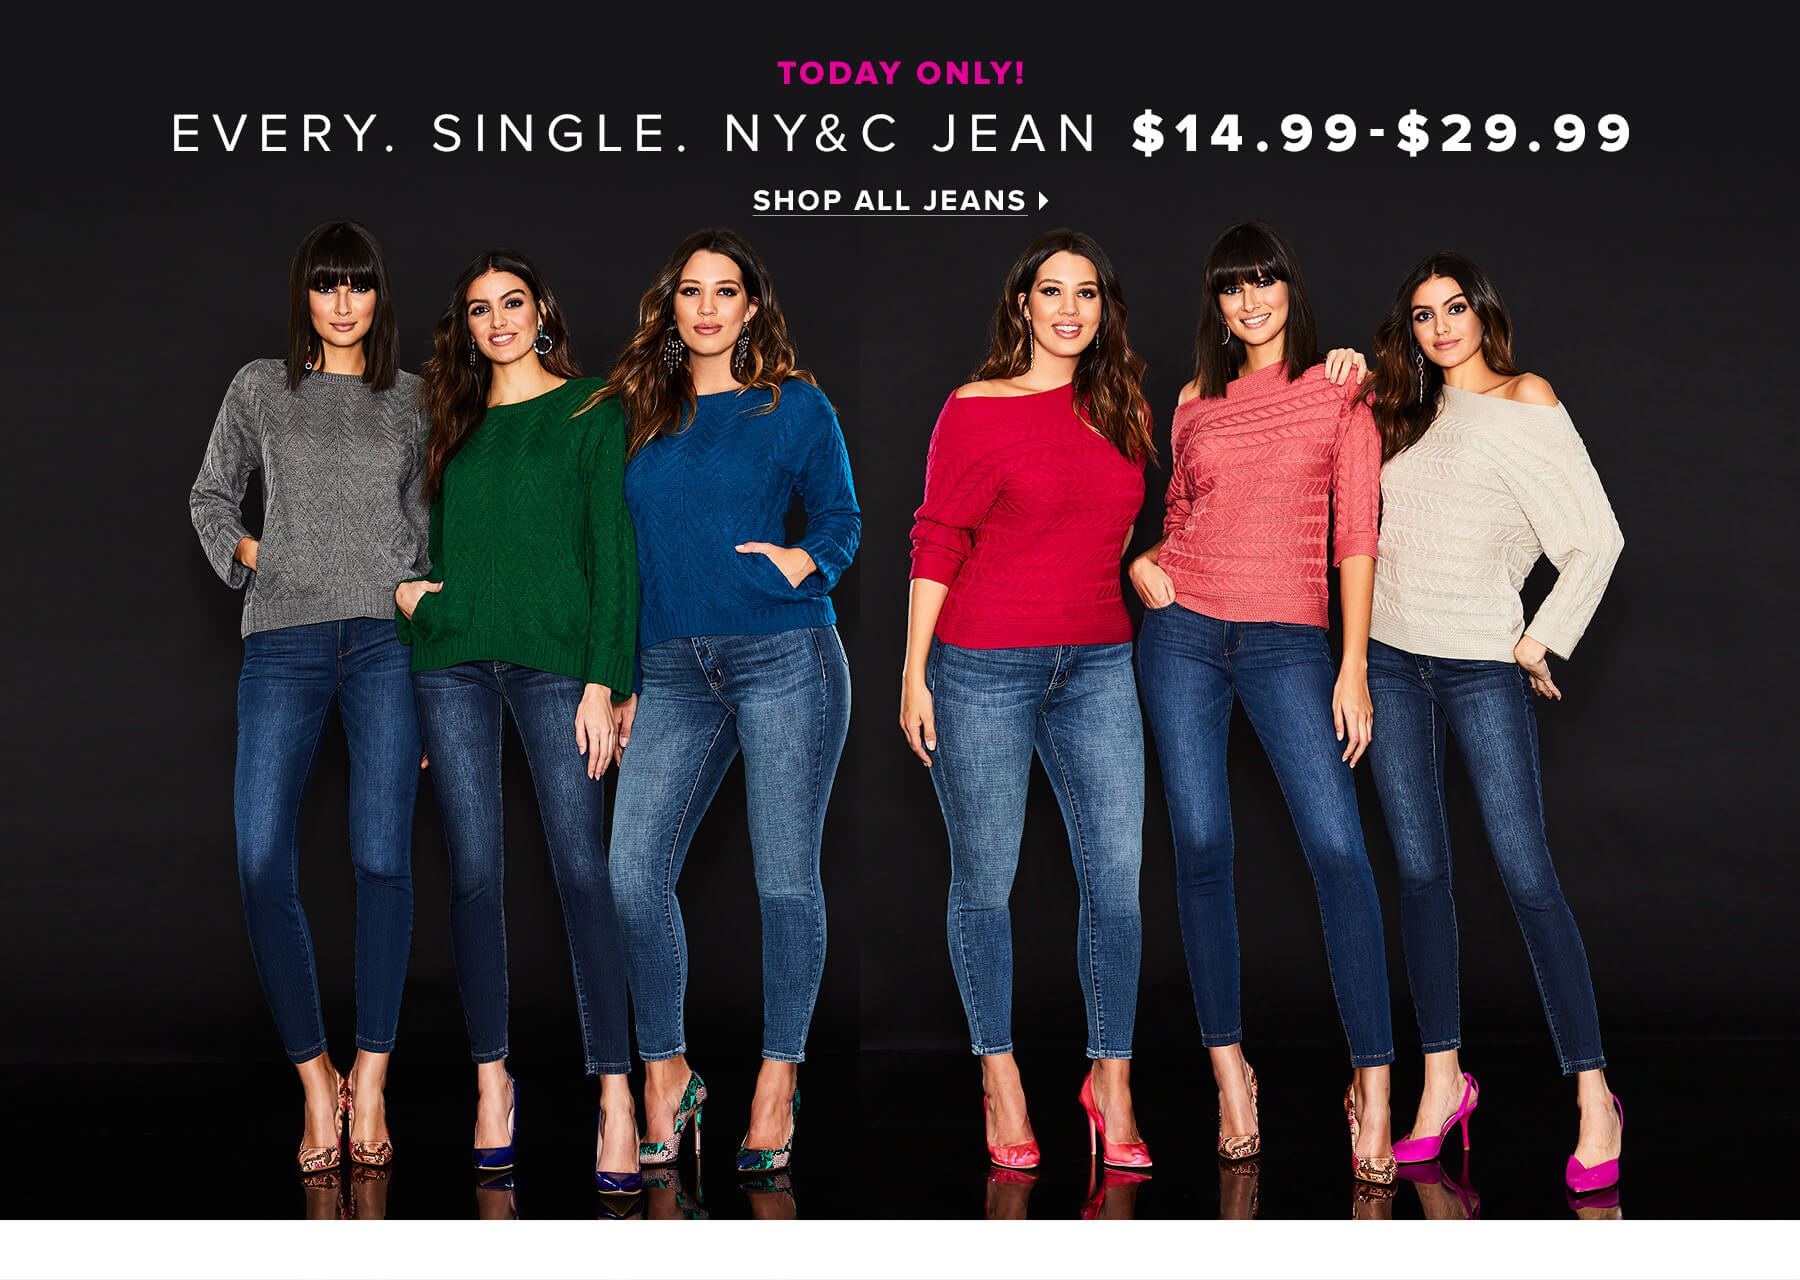 All NY&C Jeans $29.99 Or Less